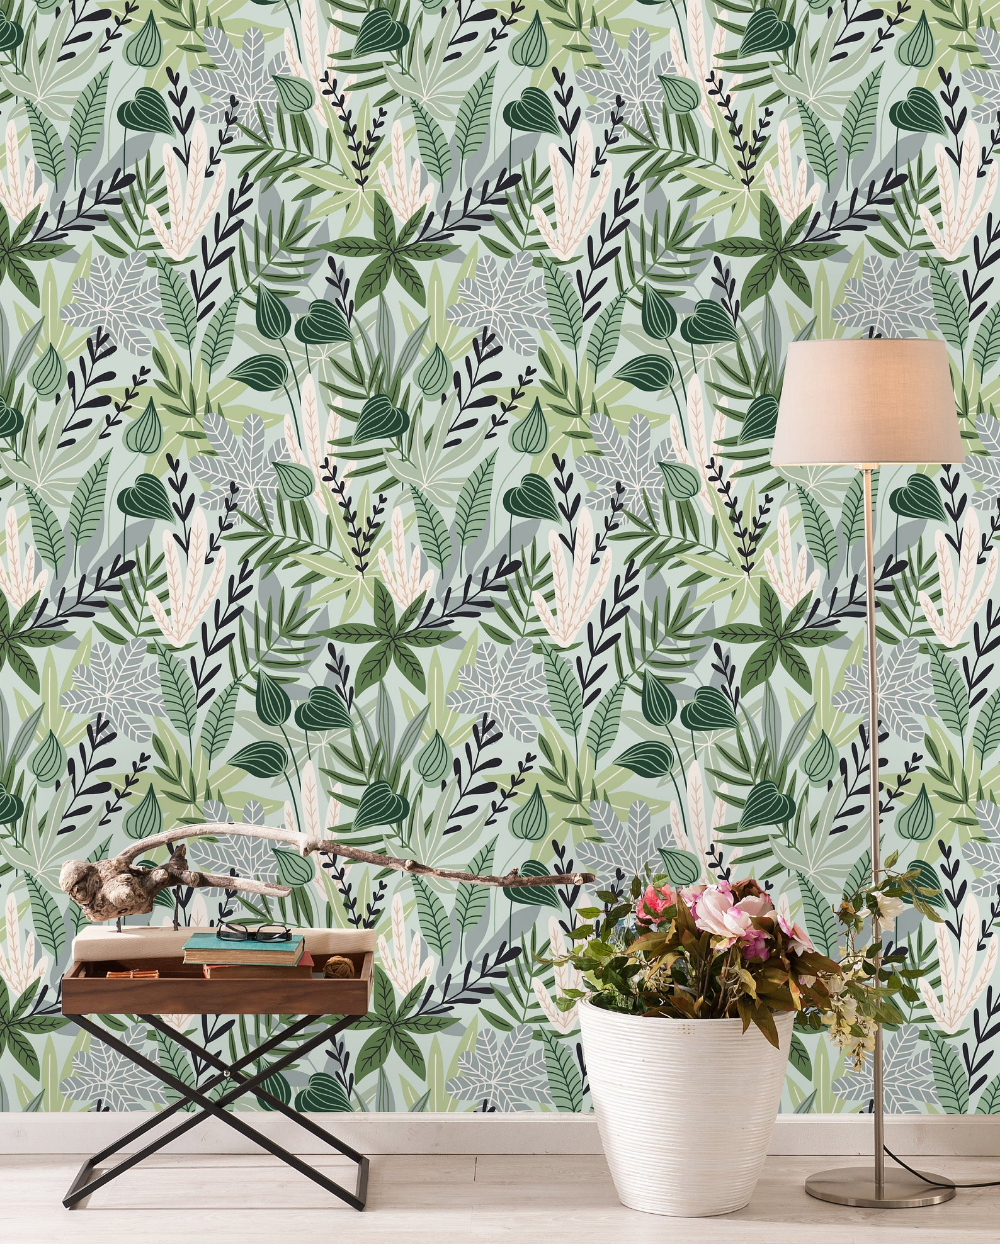 Botanical Pattern Removable Wallpaper Peel And Stick Etsy Removable Wallpaper Wall Wallpaper Botanical Pattern